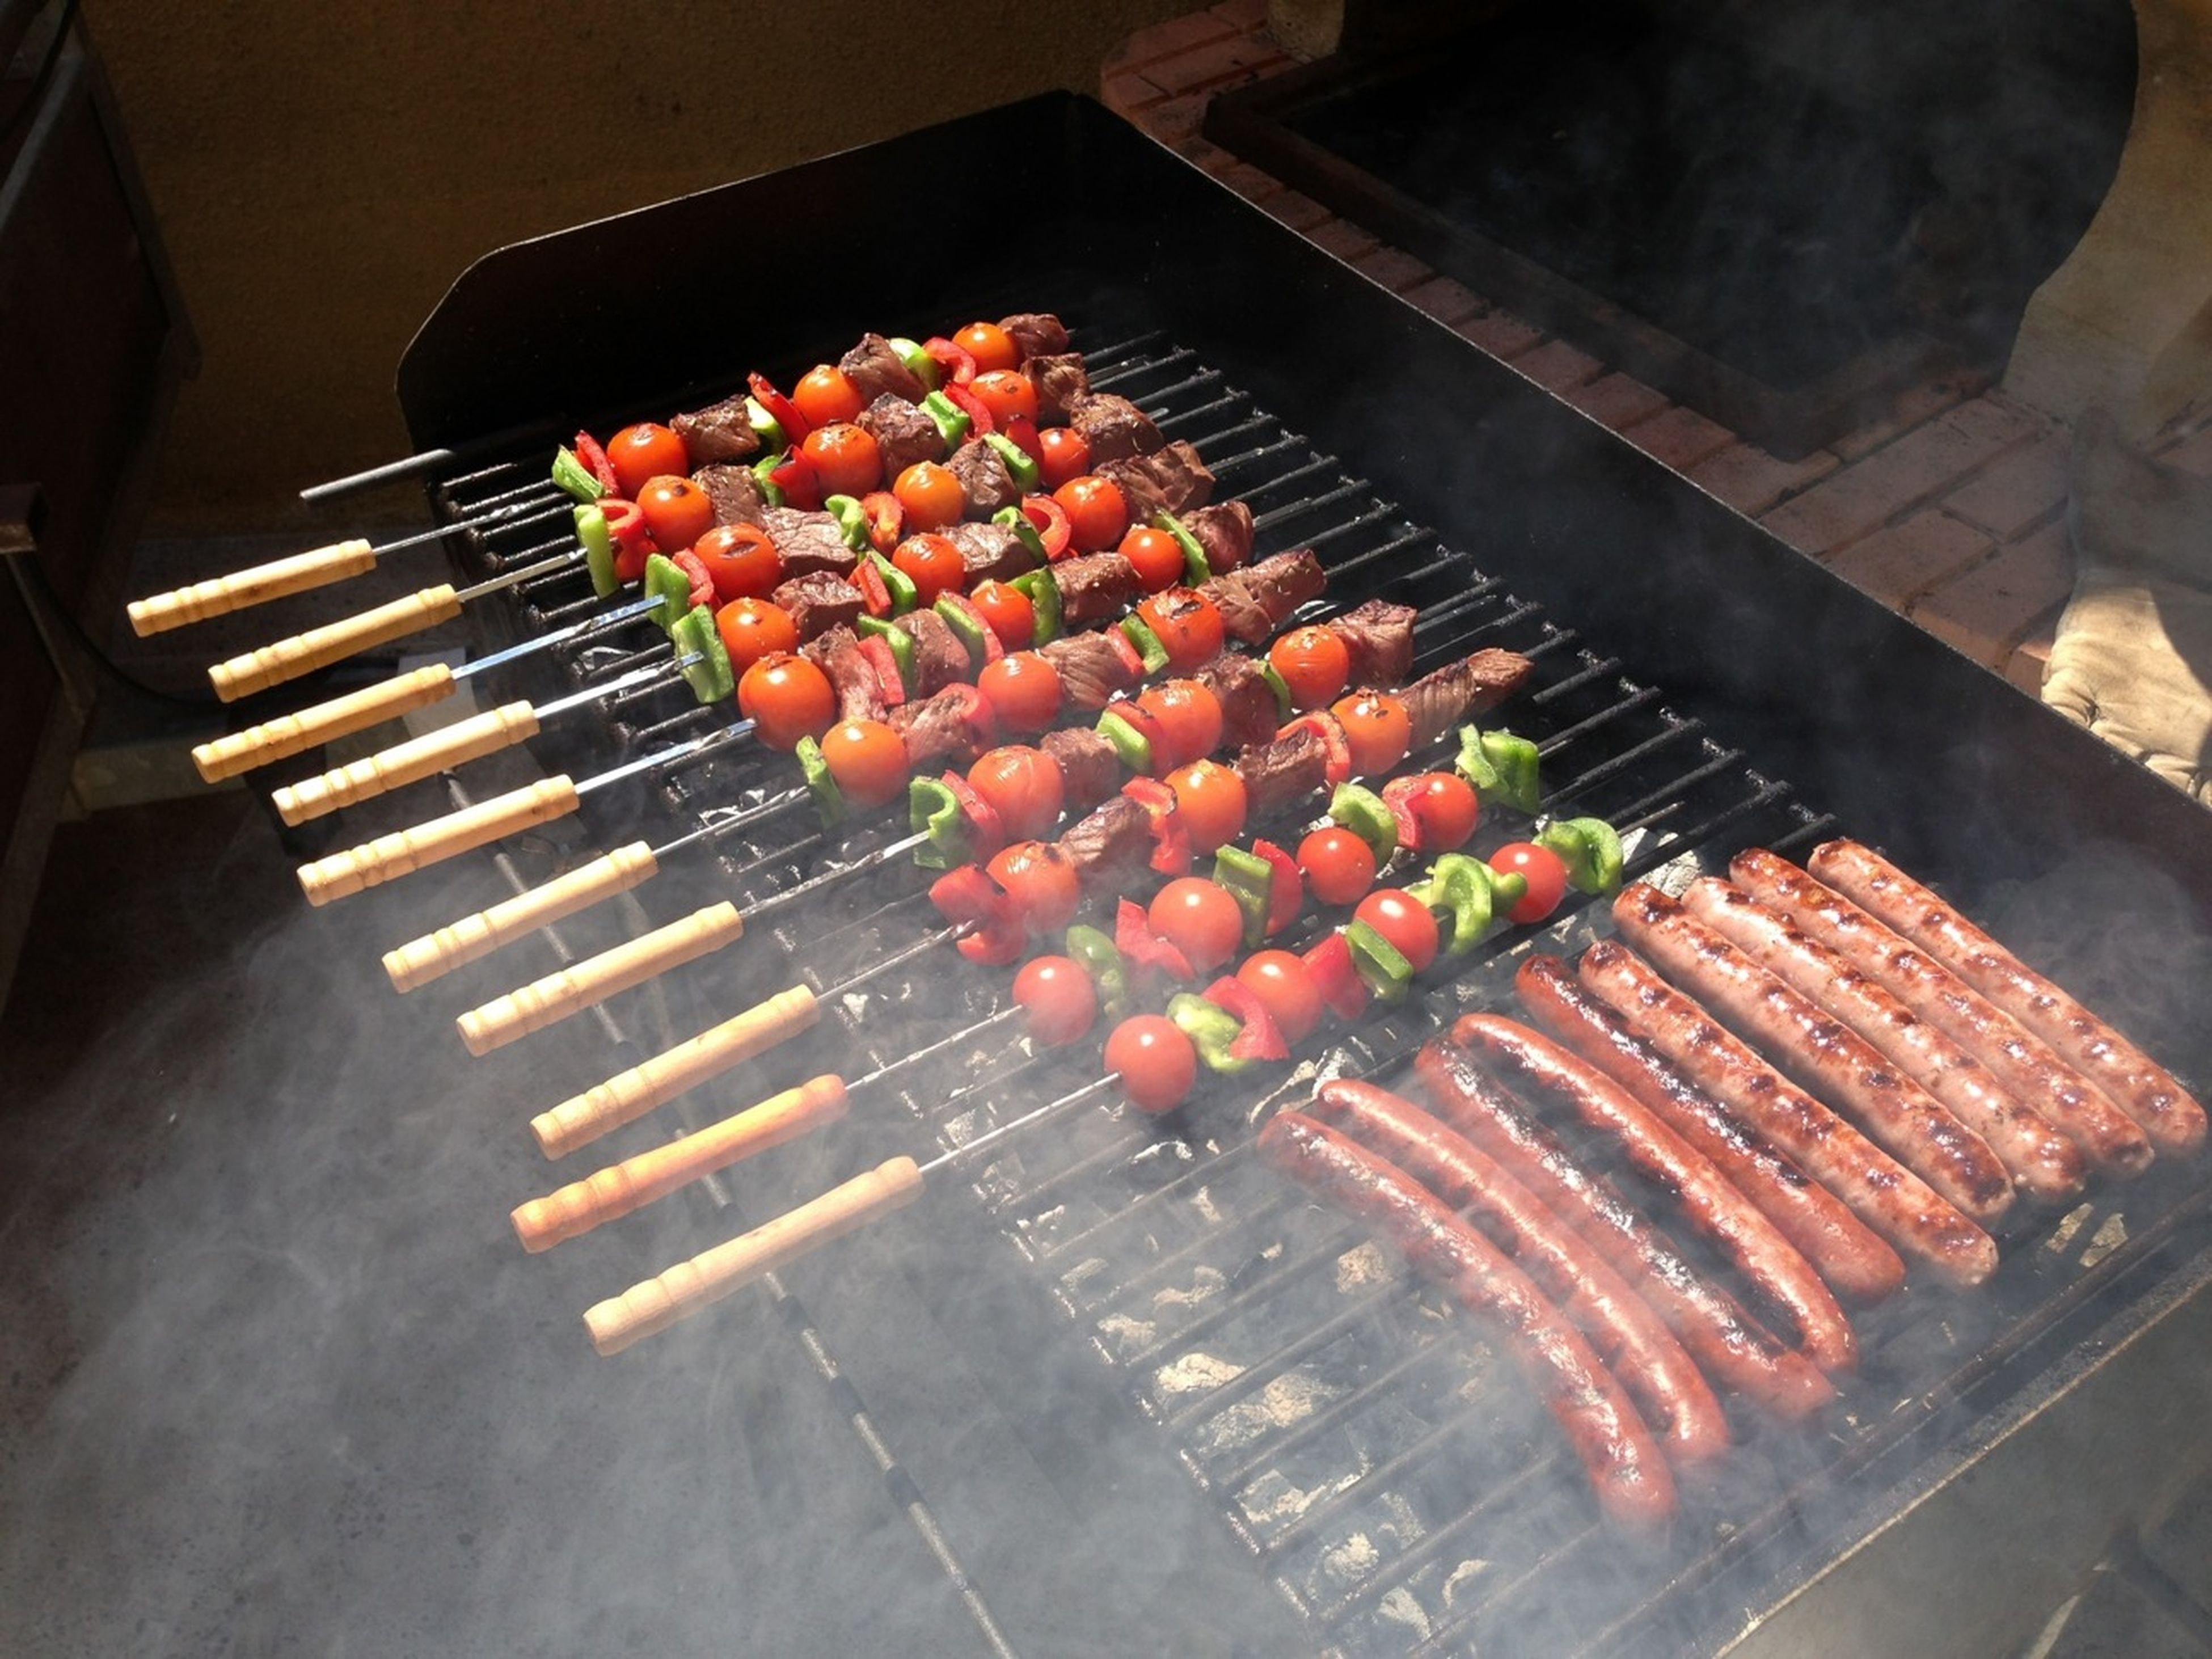 food, food and drink, indoors, high angle view, freshness, large group of objects, preparation, barbecue grill, abundance, heat - temperature, barbecue, arrangement, preparing food, healthy eating, cooking, still life, in a row, meat, for sale, stack